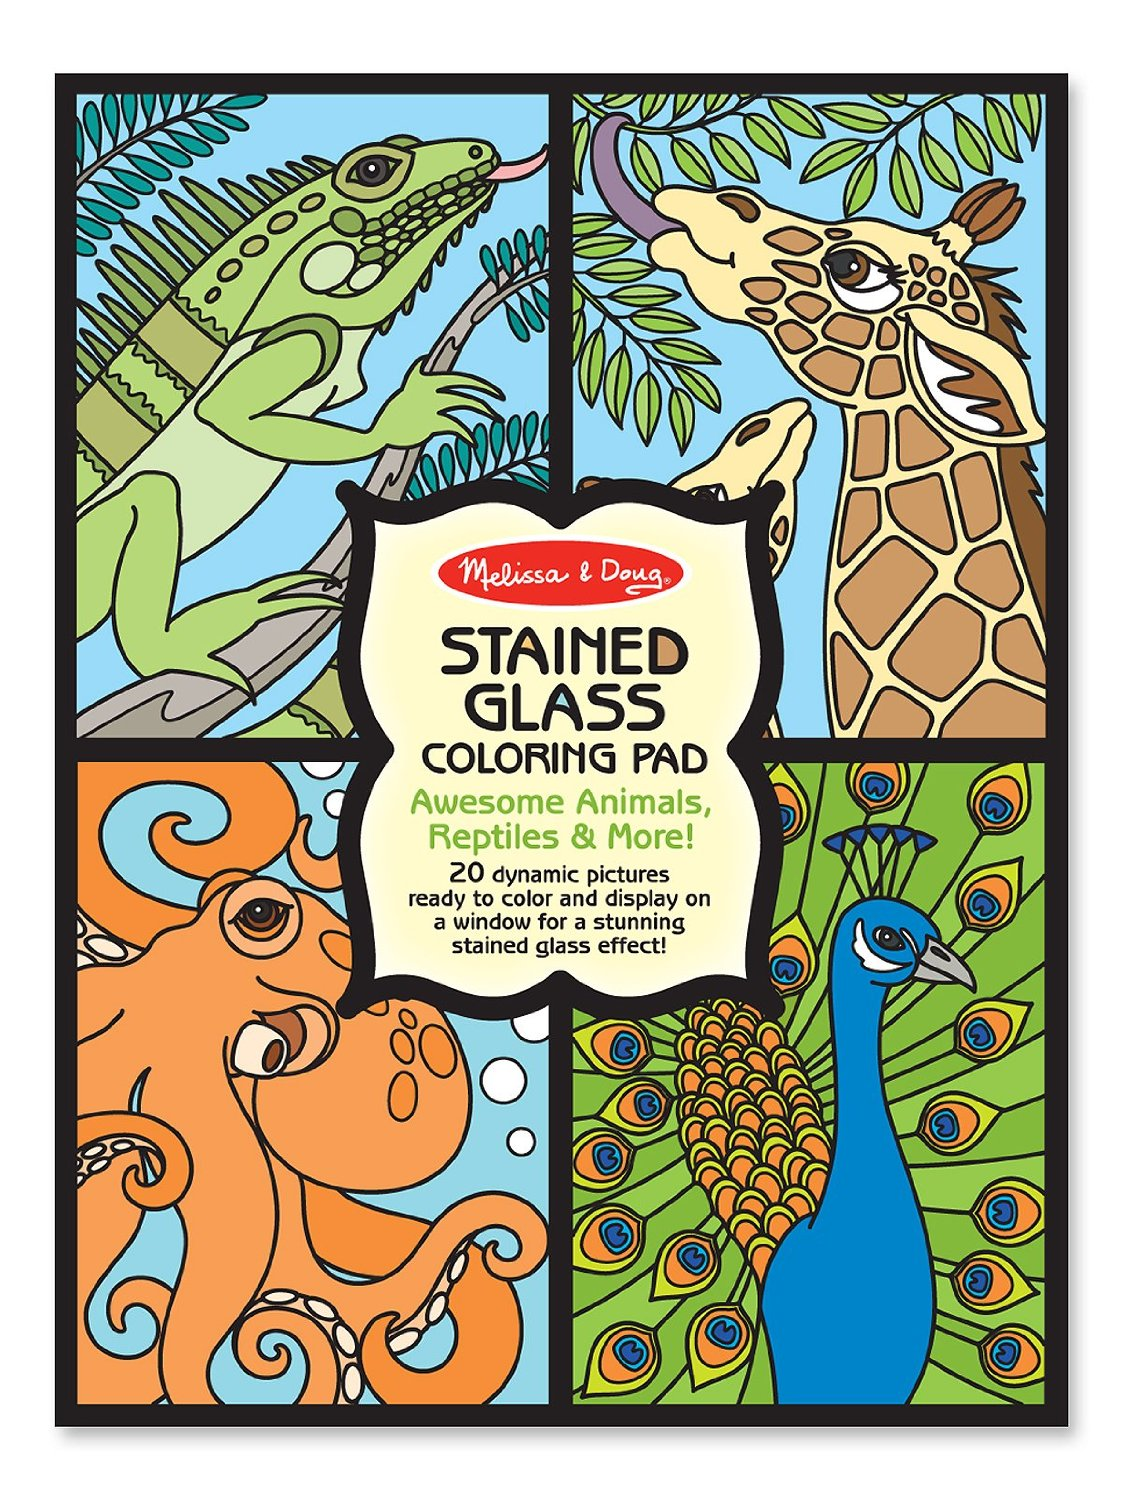 Melissa & Doug Stained Glass Coloring Pad - Animals